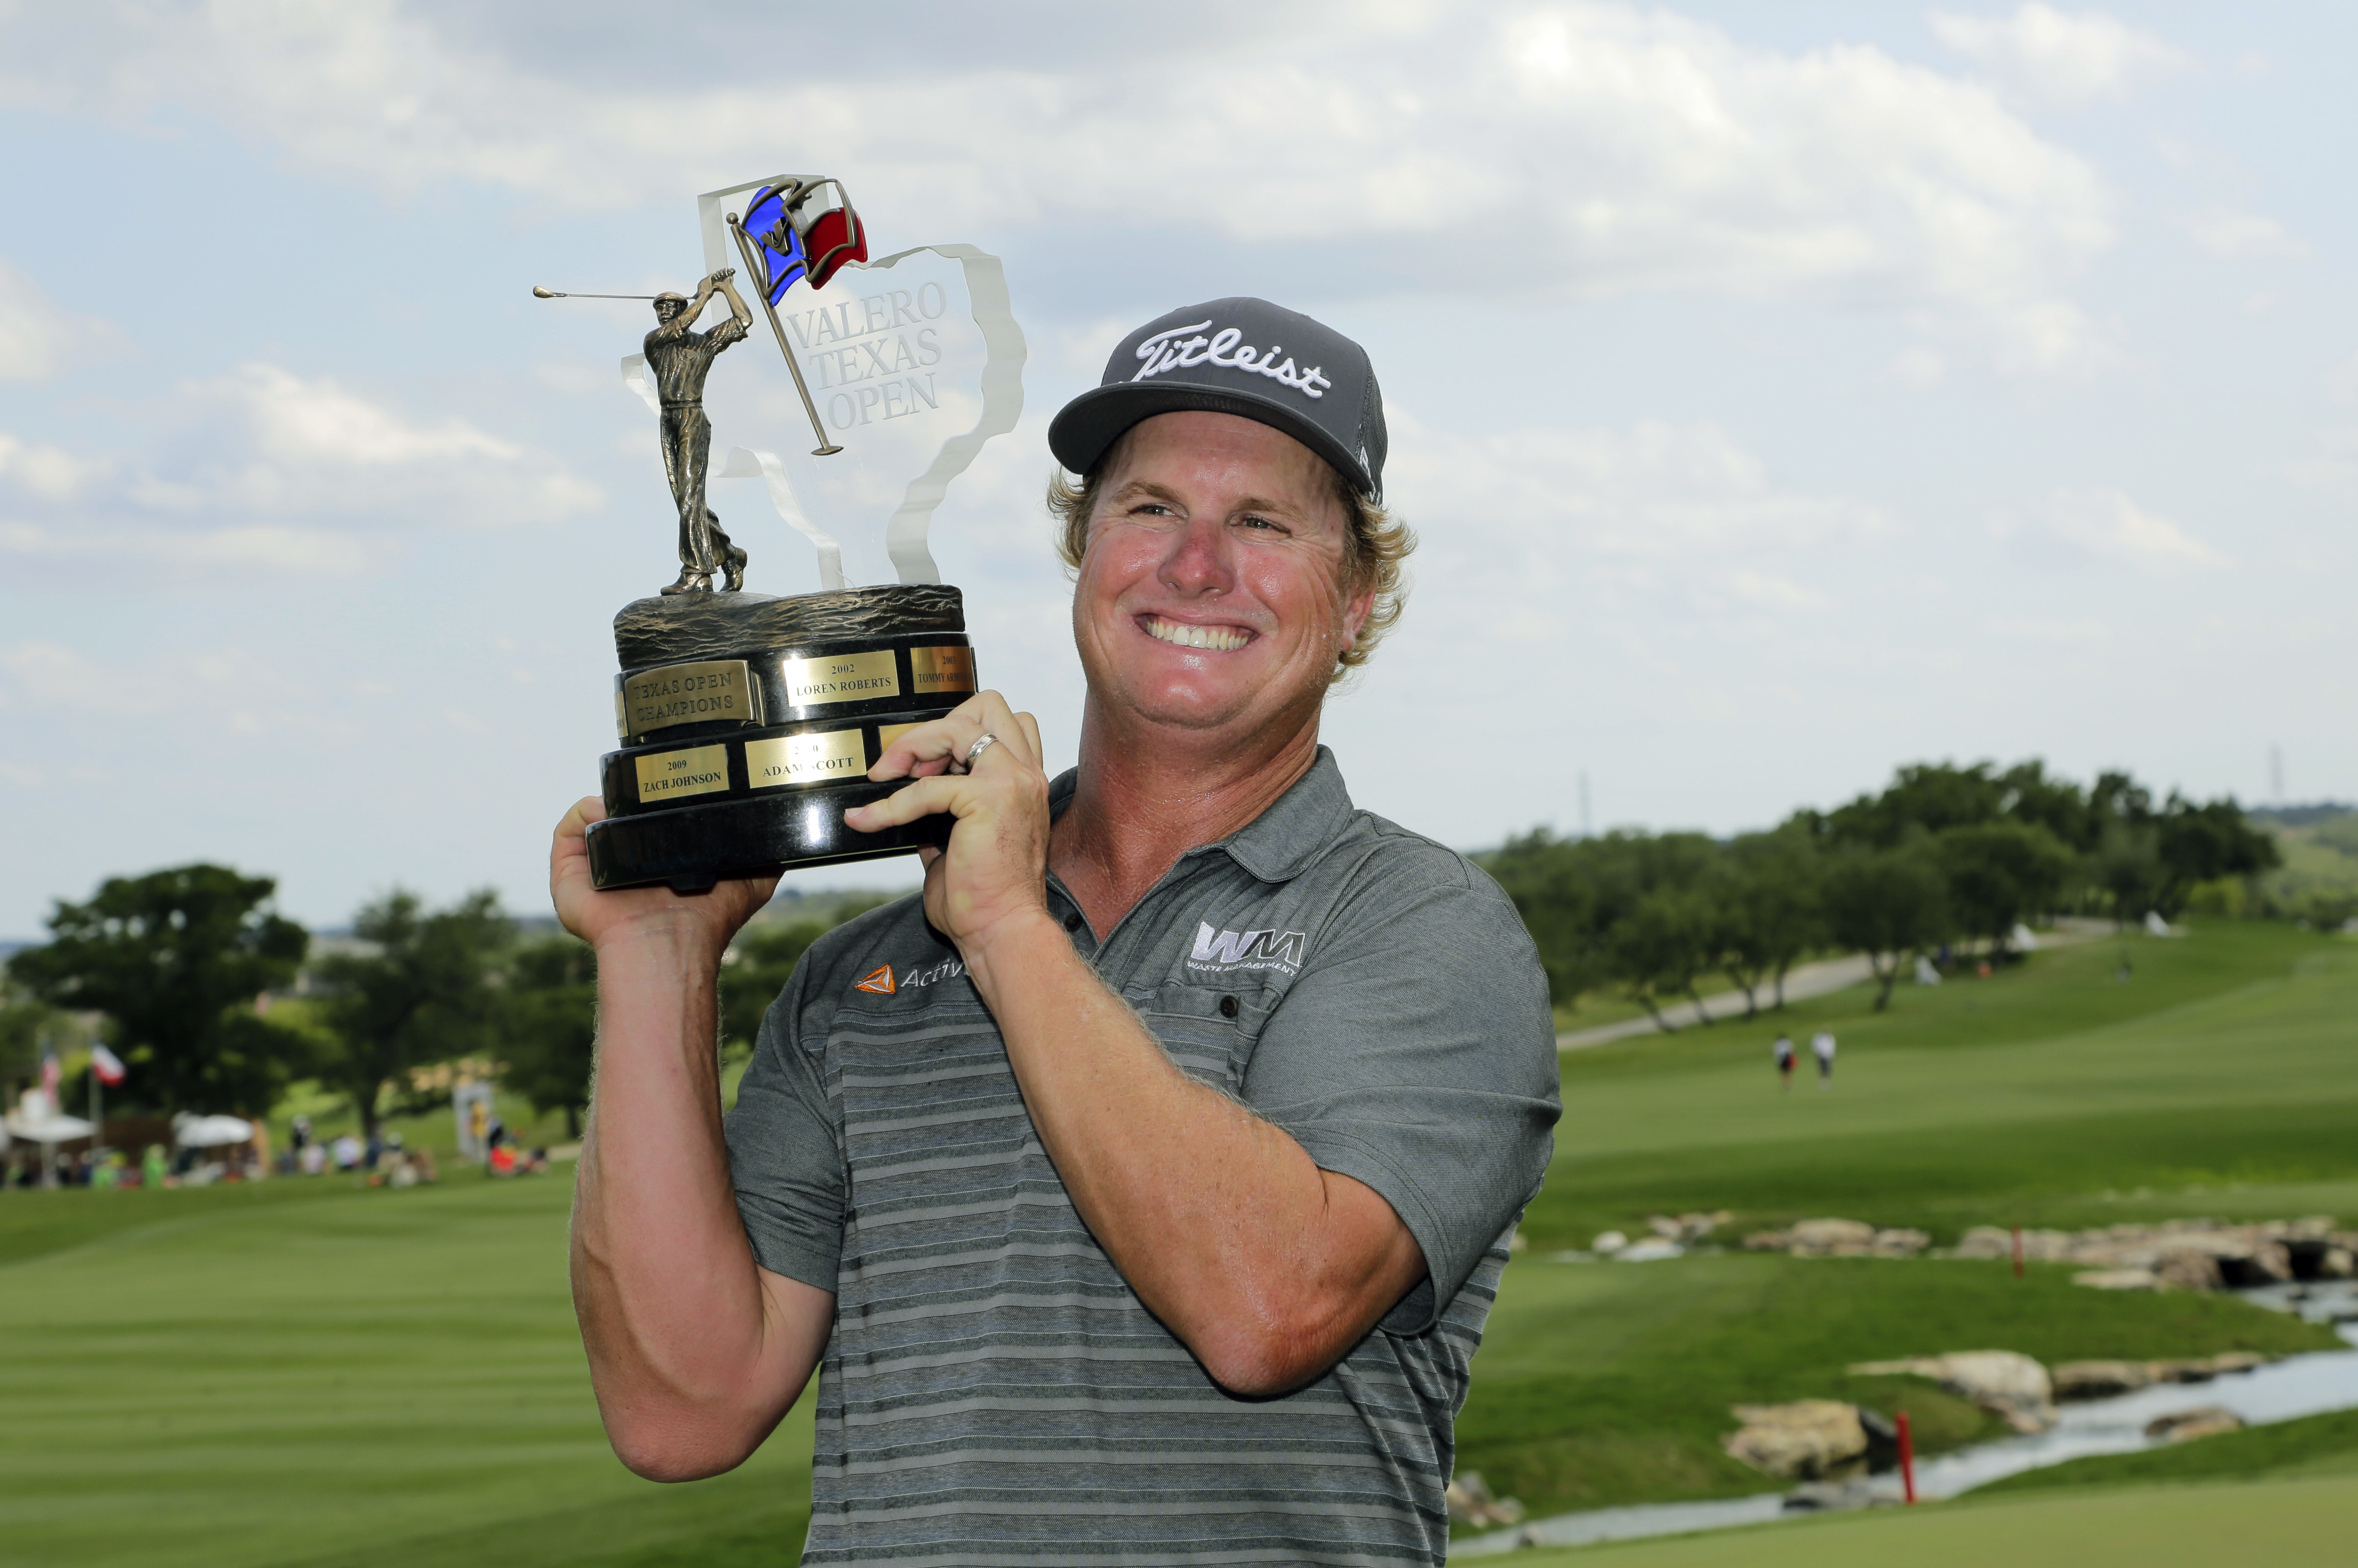 Charley Hoffman poses with his trophy after winning the Texas Open golf tournament.